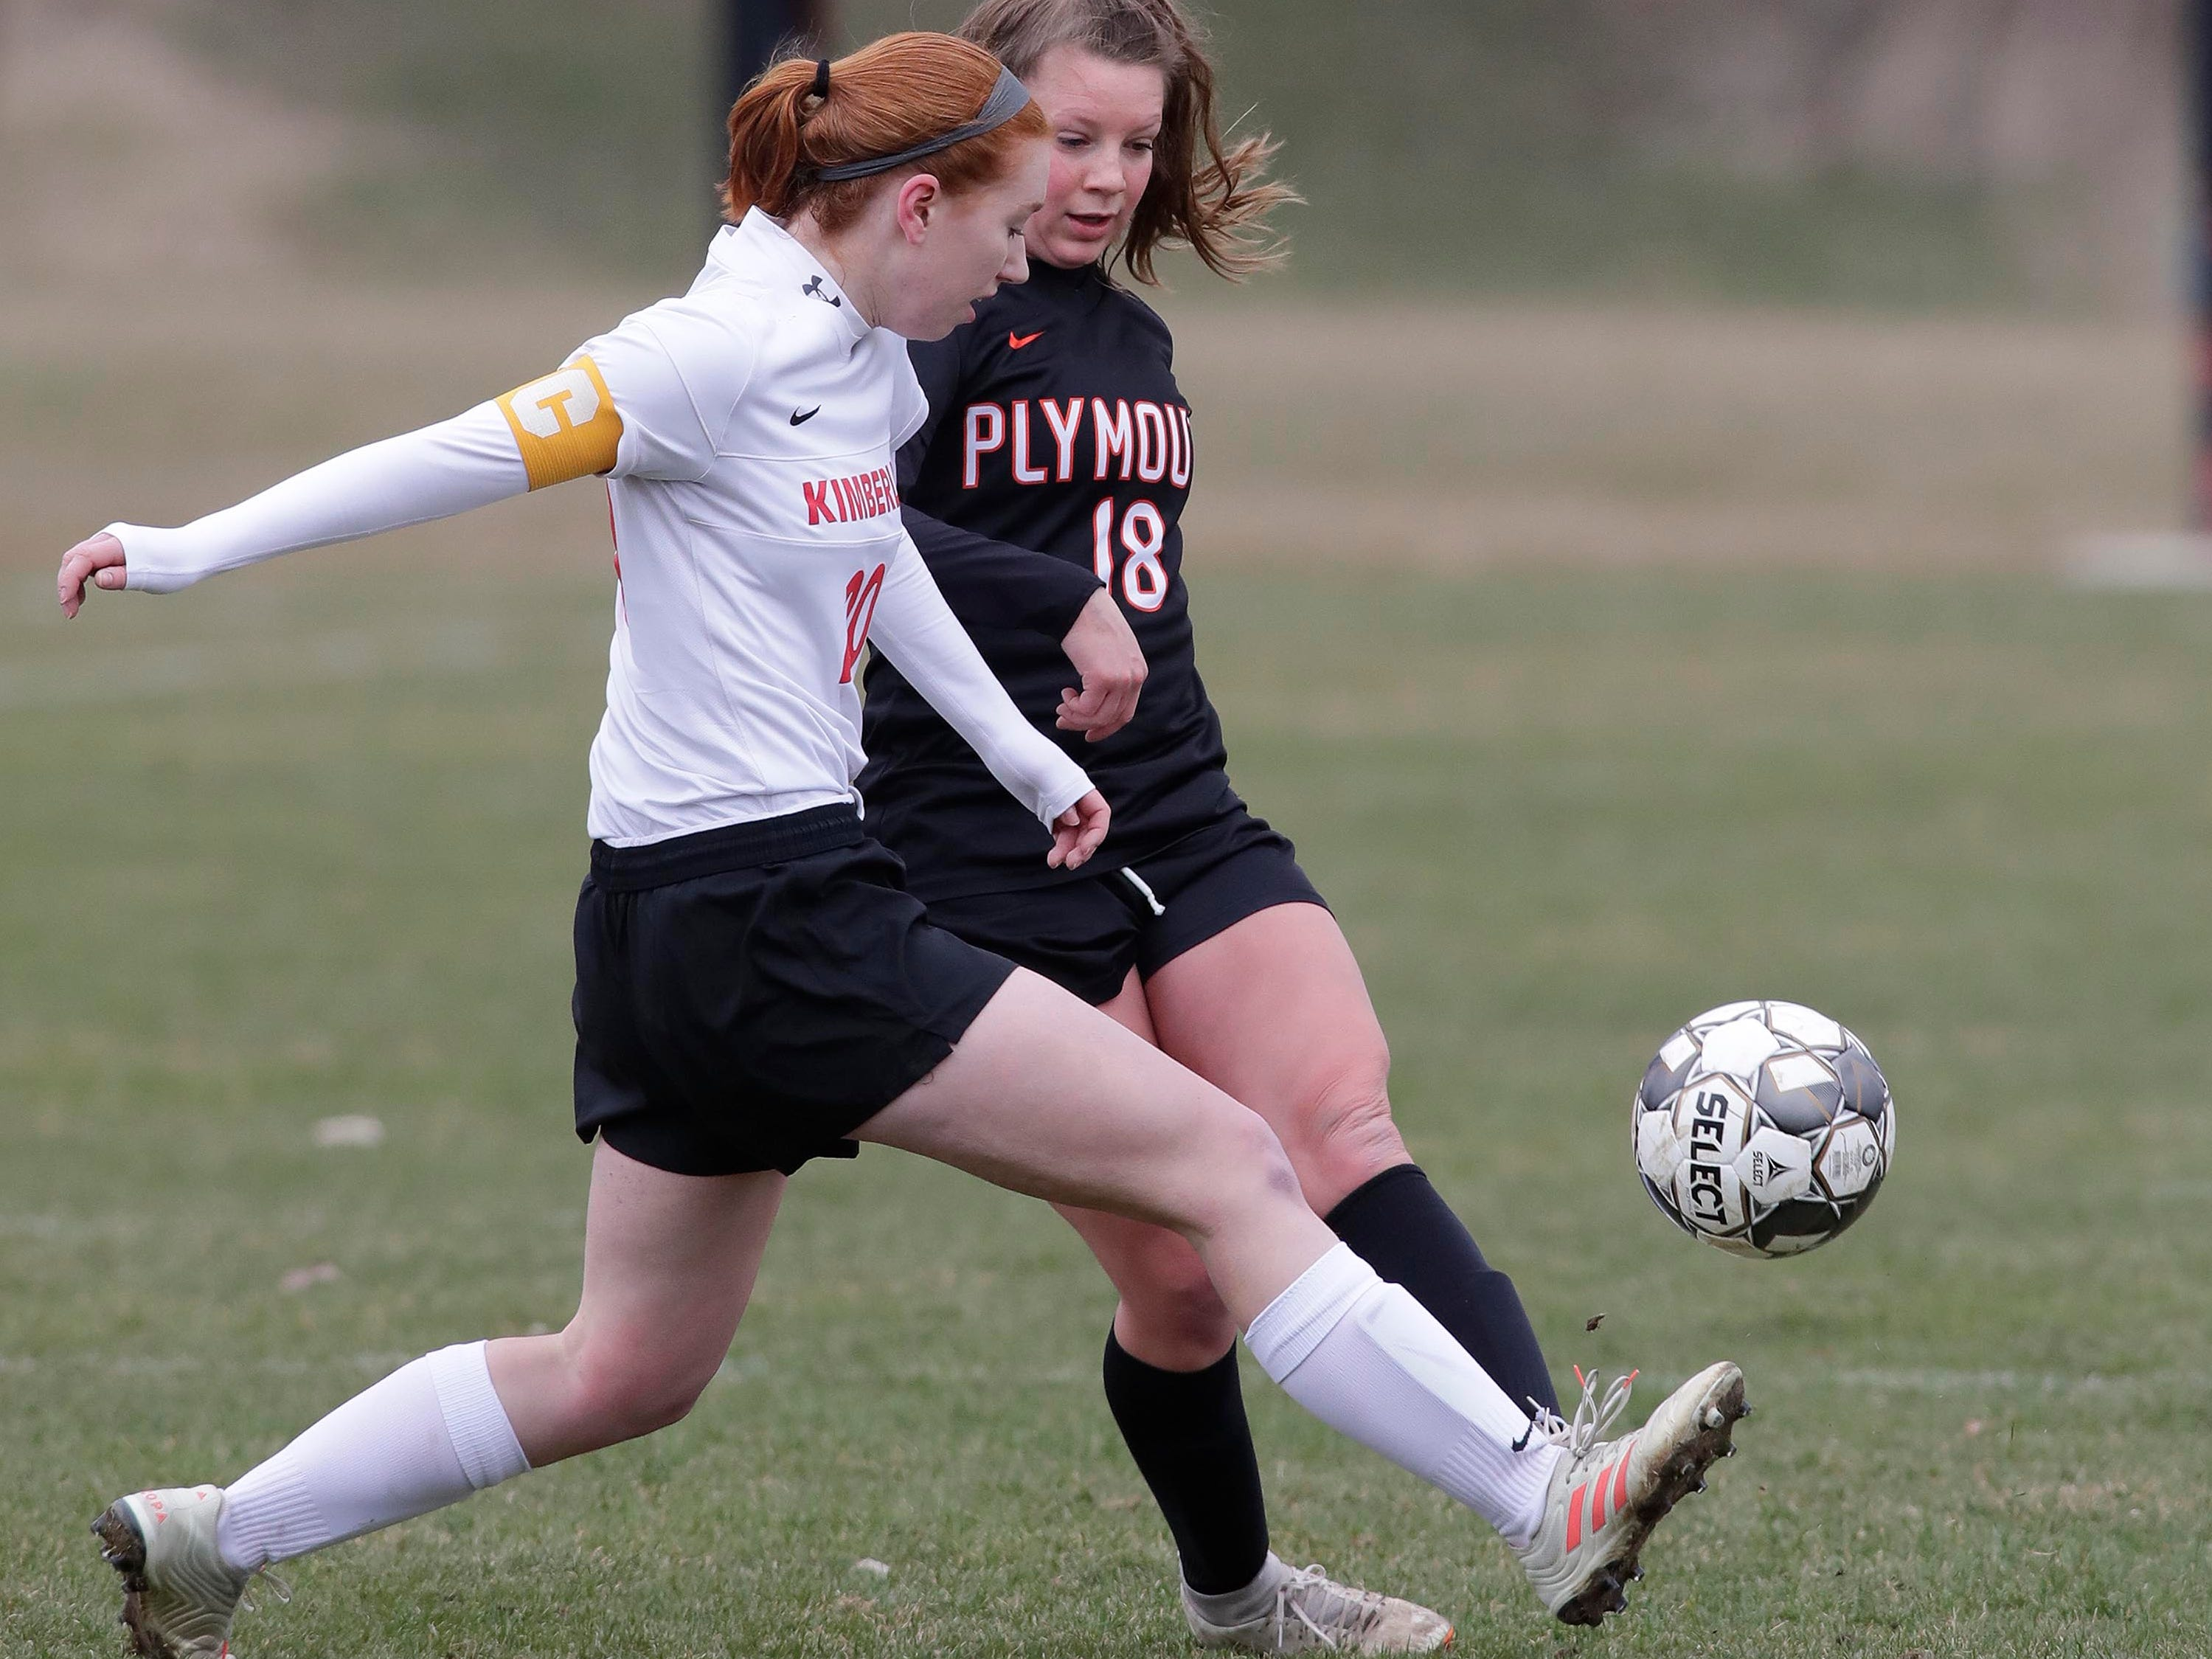 Kimberly's Courtney Rammer (20) controls the ball by Plymouth's Emma Welsch (18), Saturday, April 13, 2019, in Plymouth, Wis.